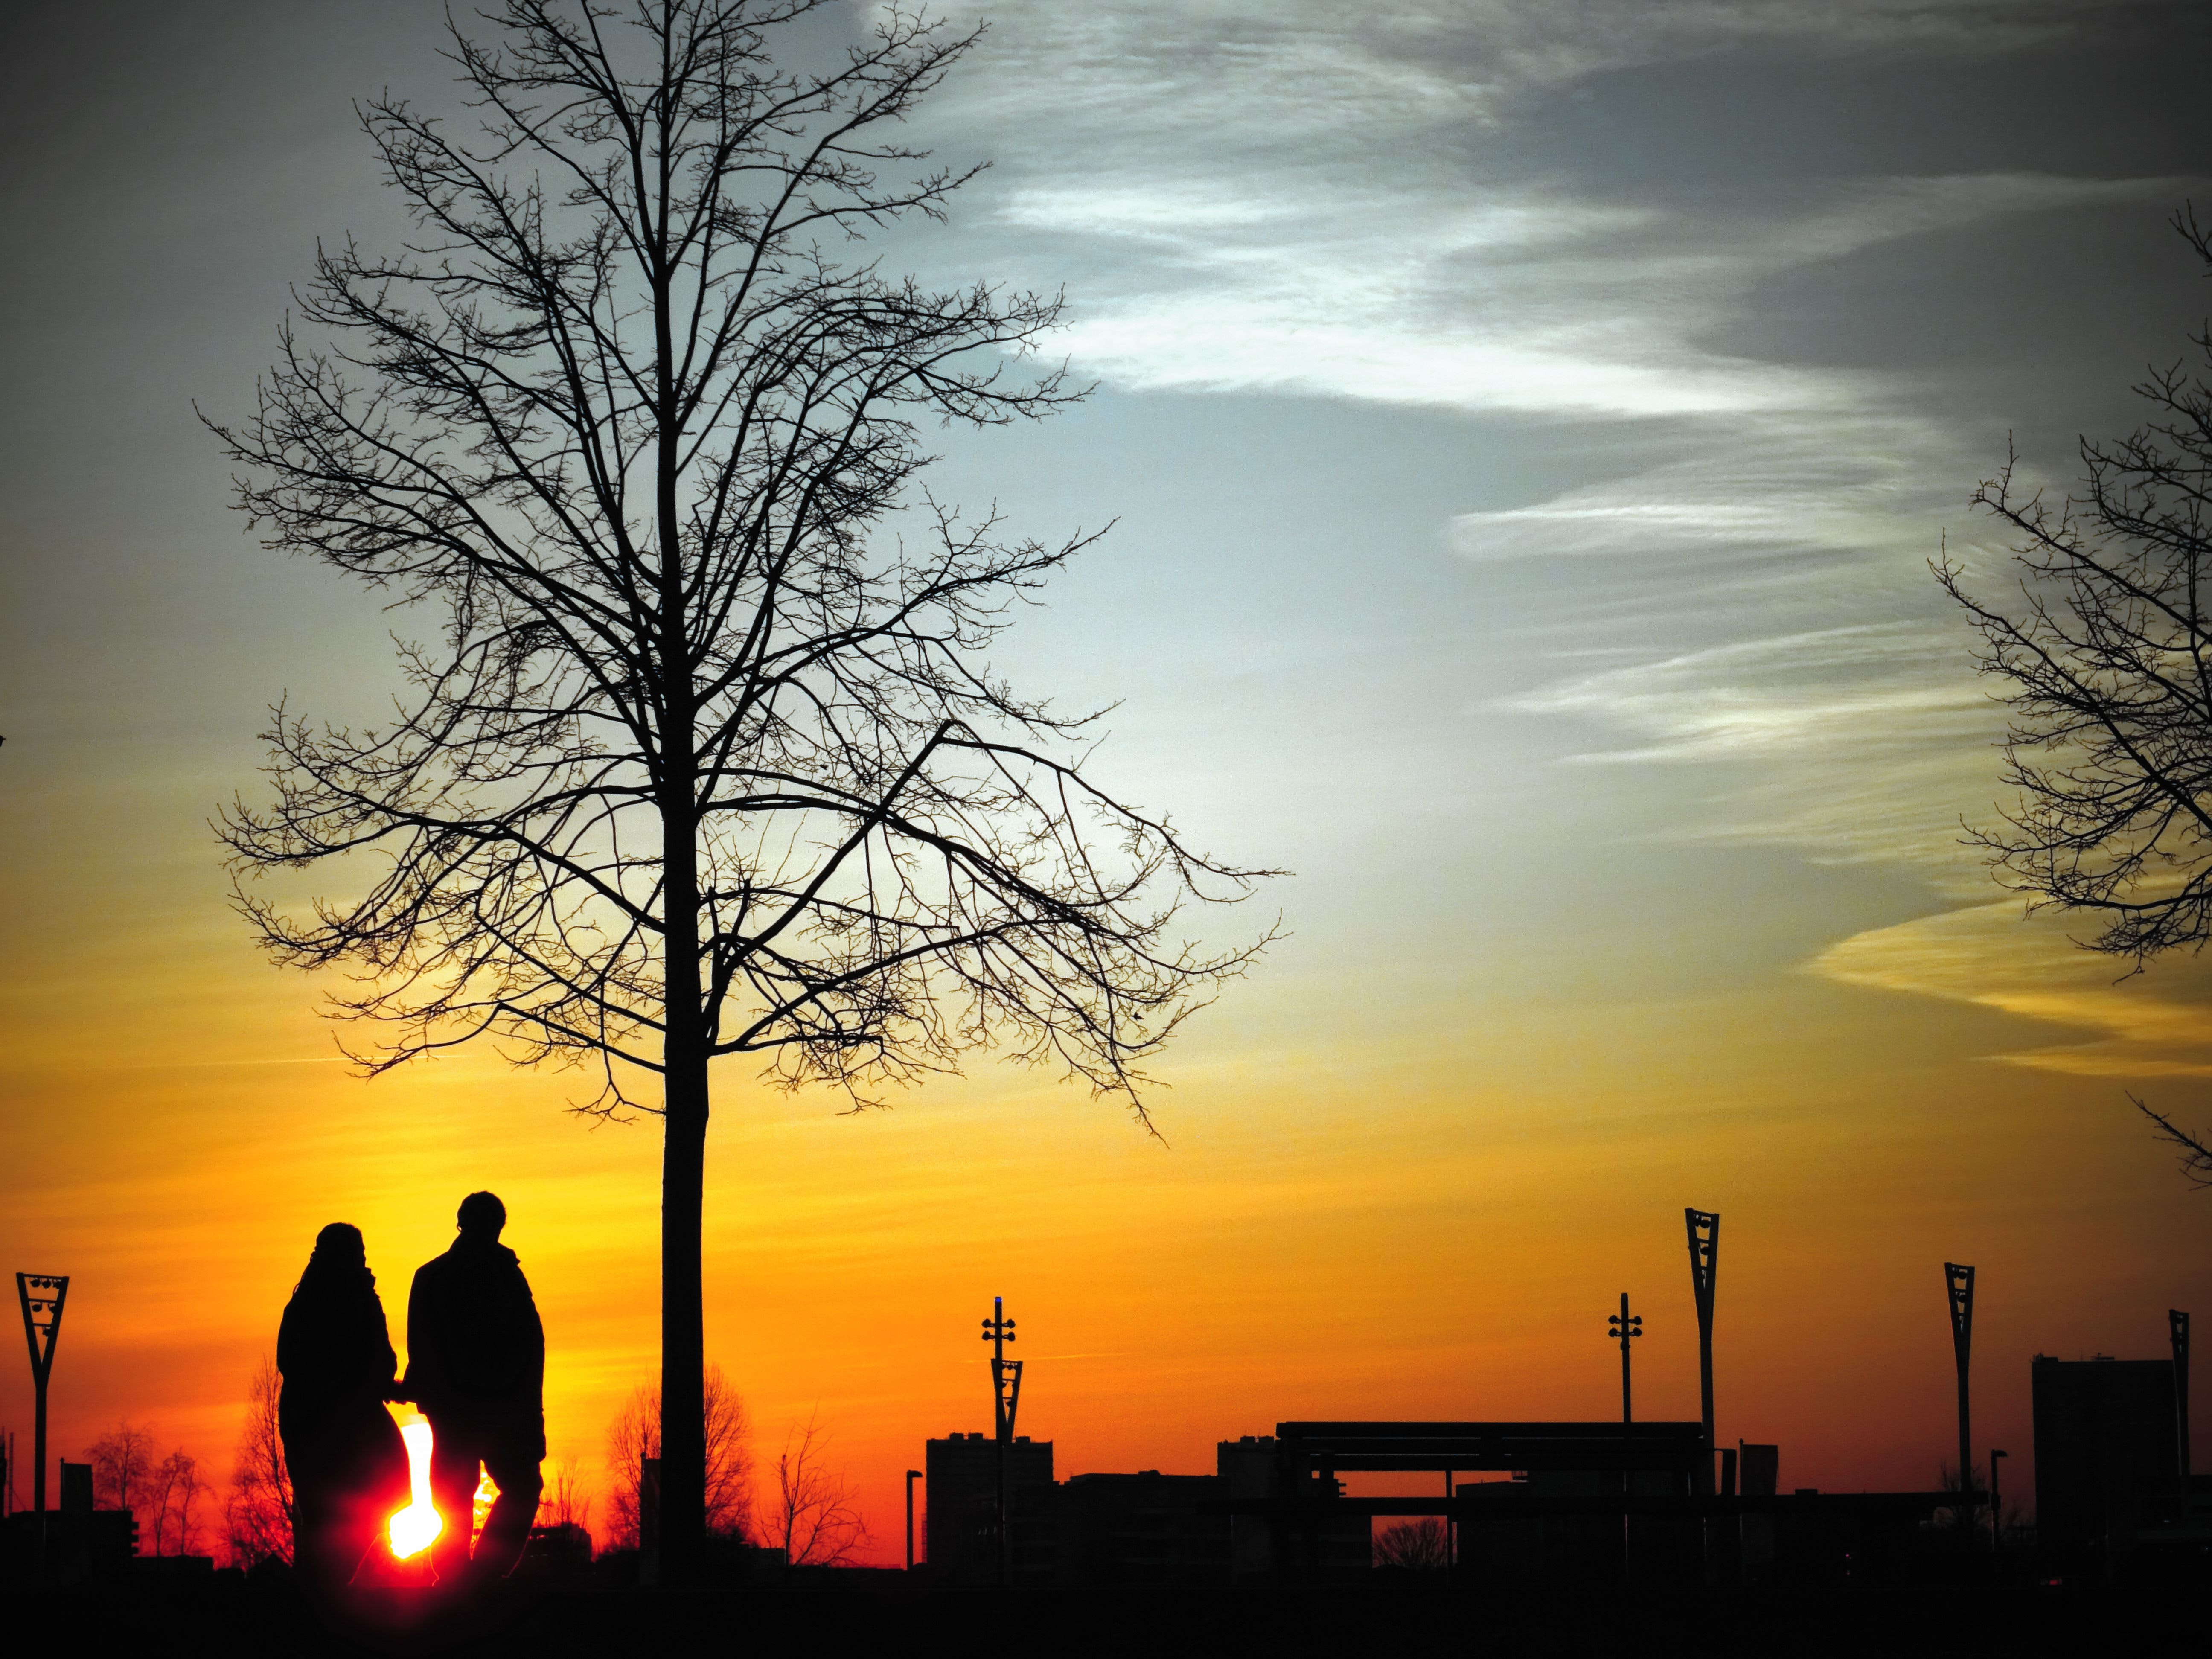 127634 download wallpaper Love, Couple, Pair, Silhouettes, Sunset, Stroll, Wood, Tree screensavers and pictures for free